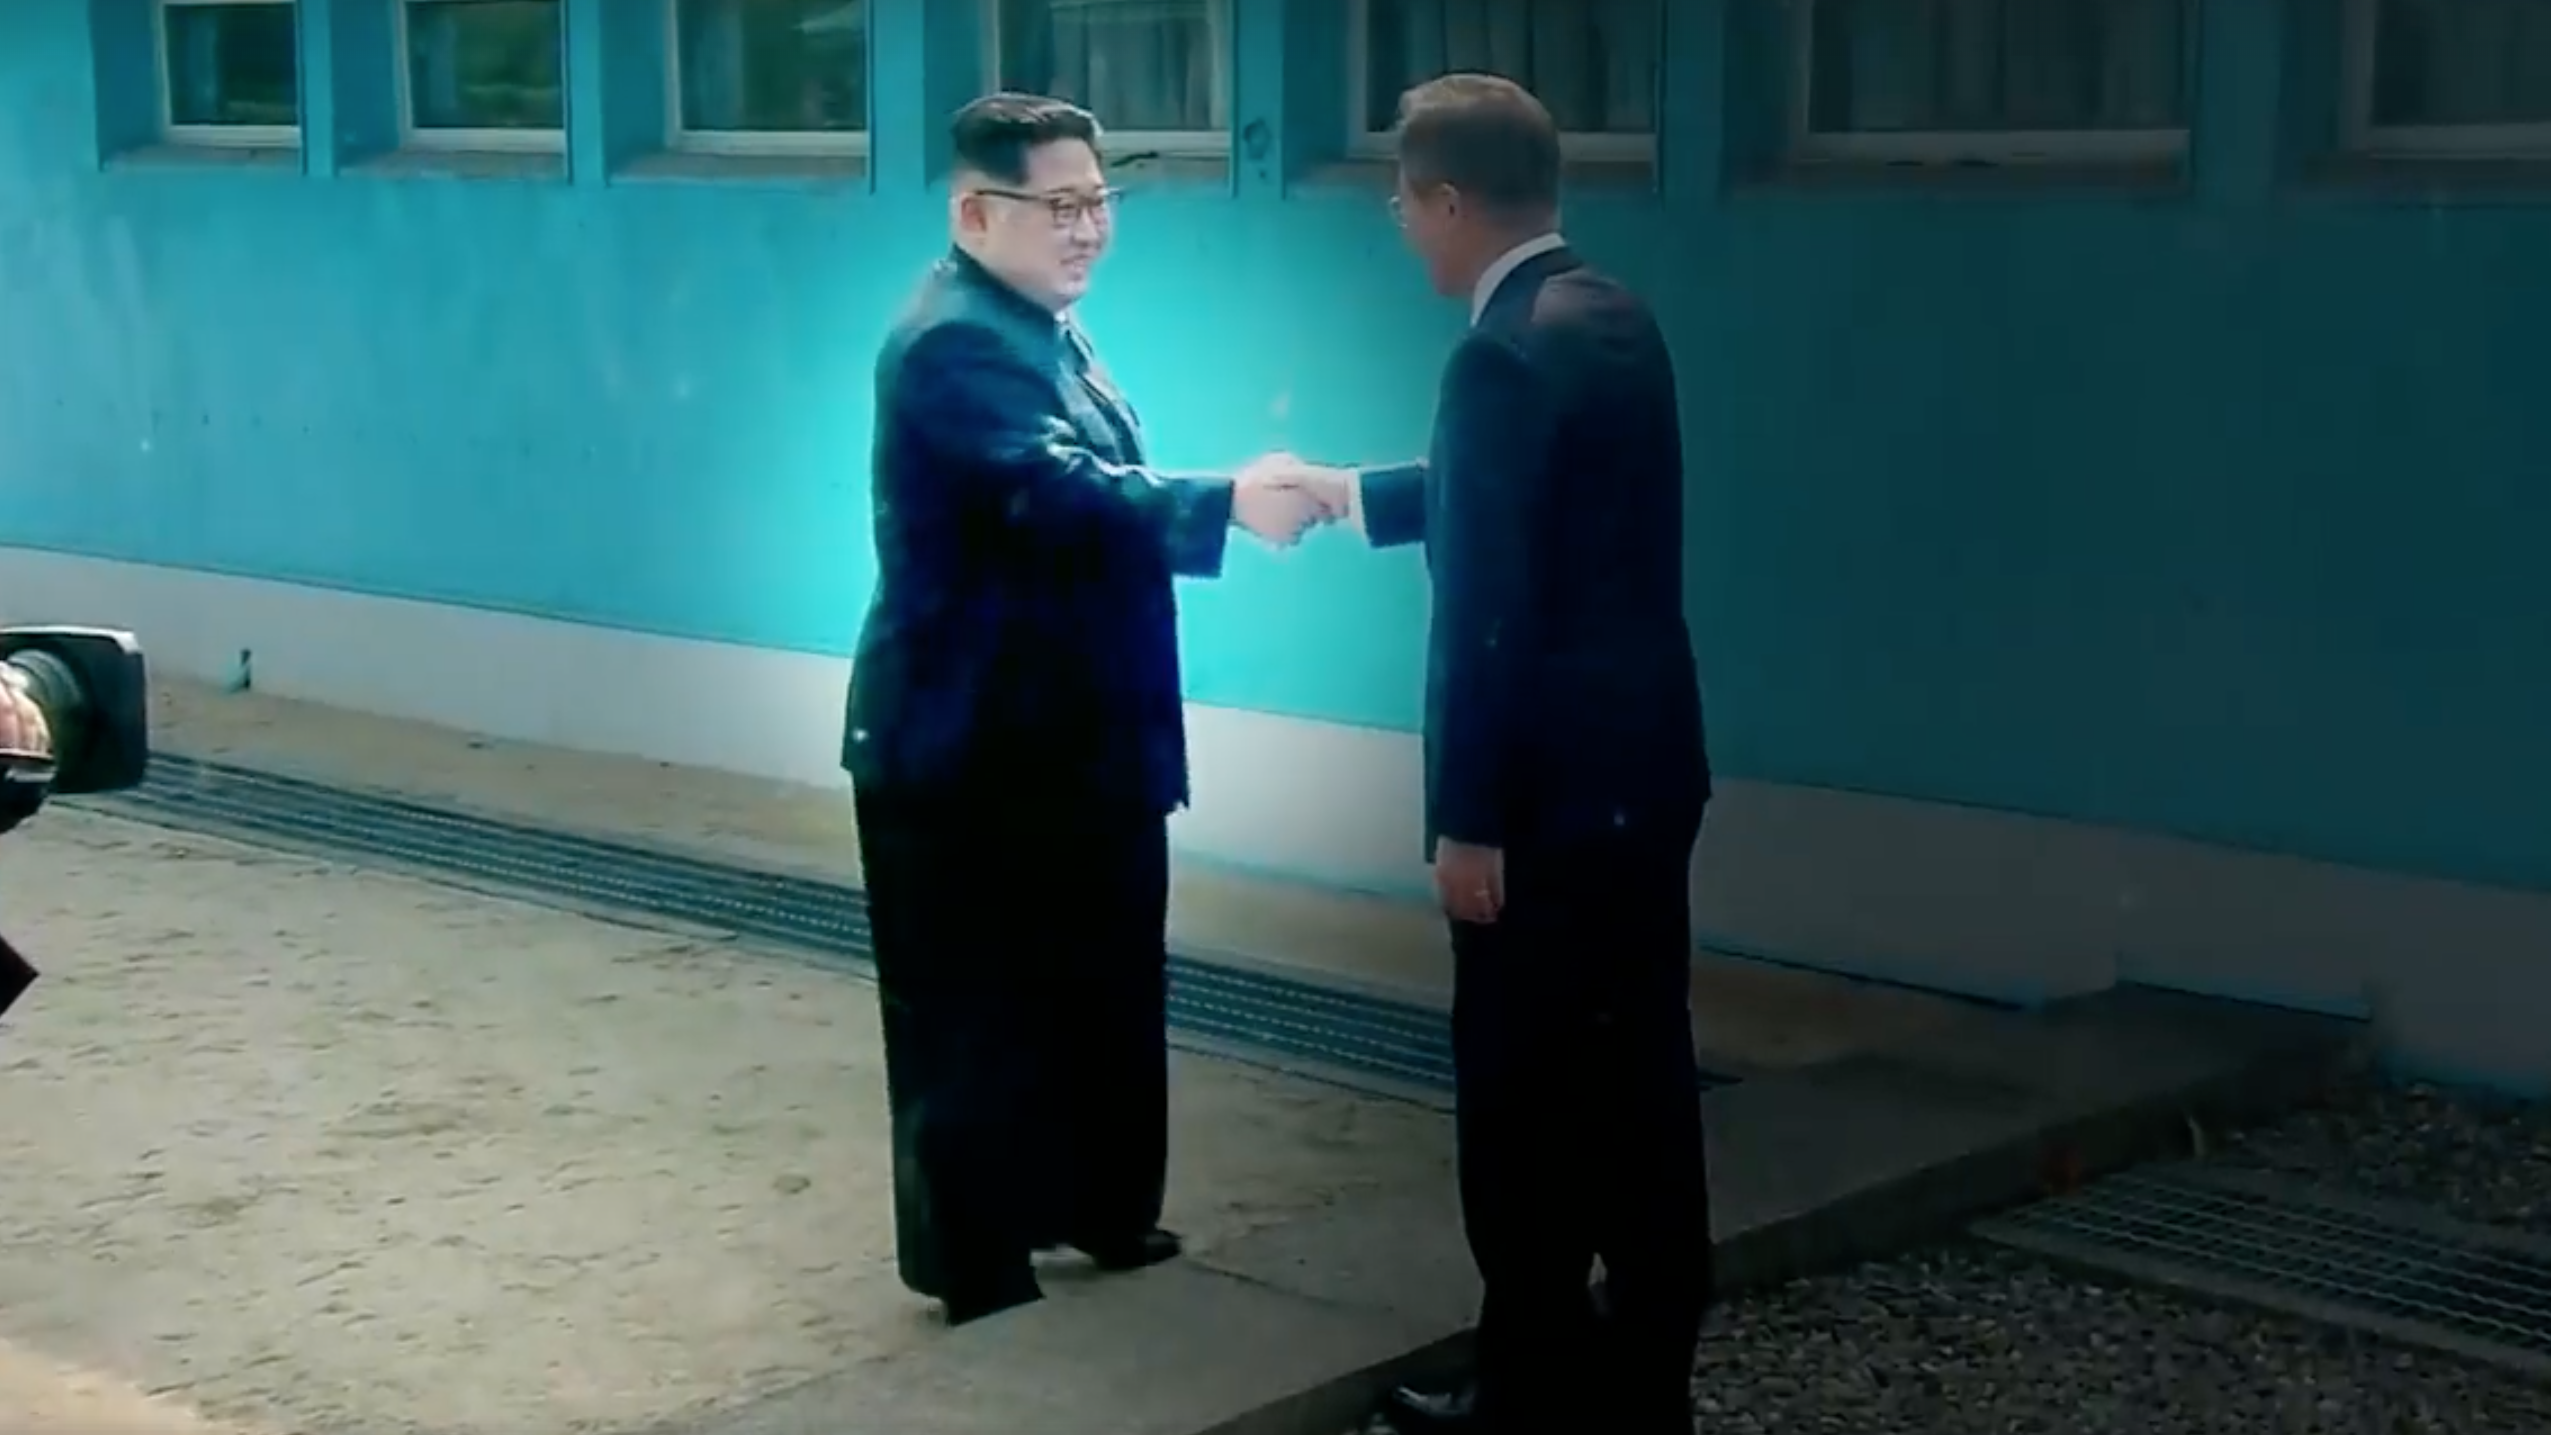 Image for 'Shaking The Hand Of Peace': Unpacking Trump's North Korea Movie Trailer Article